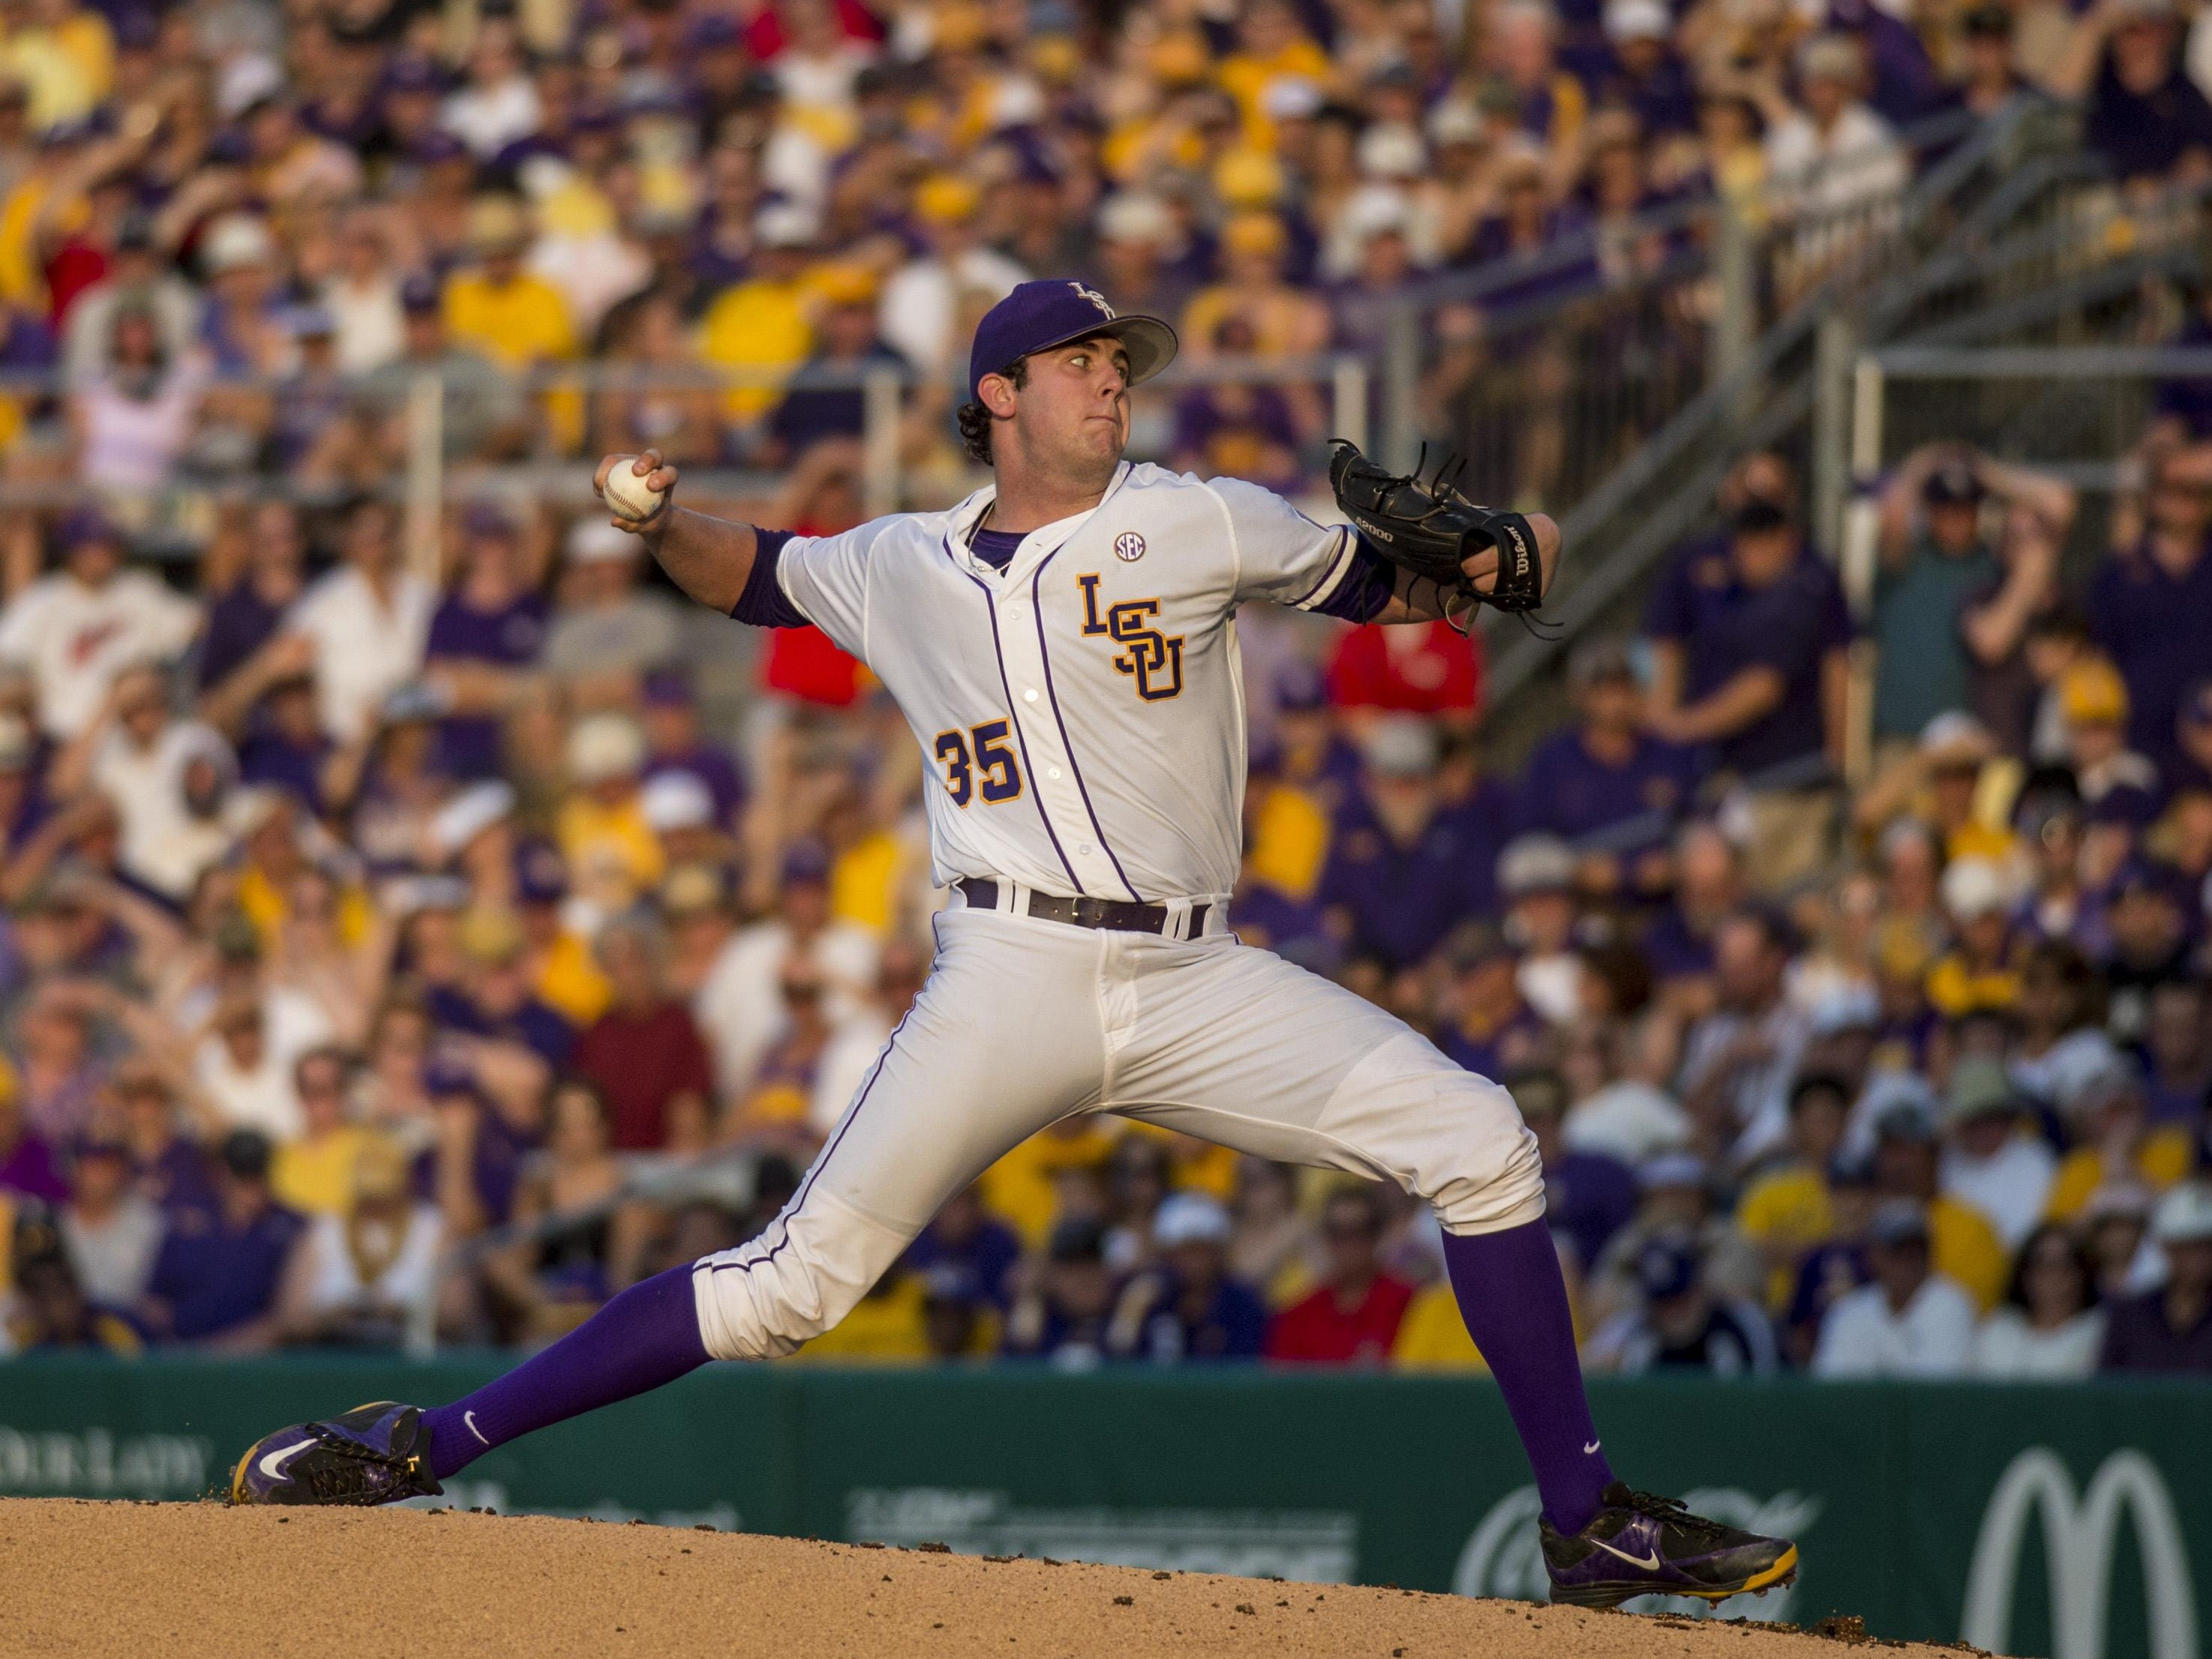 LSU Tigers pitcher Alex Lange (35) was honored as the national Freshman Pitcher of the Year.